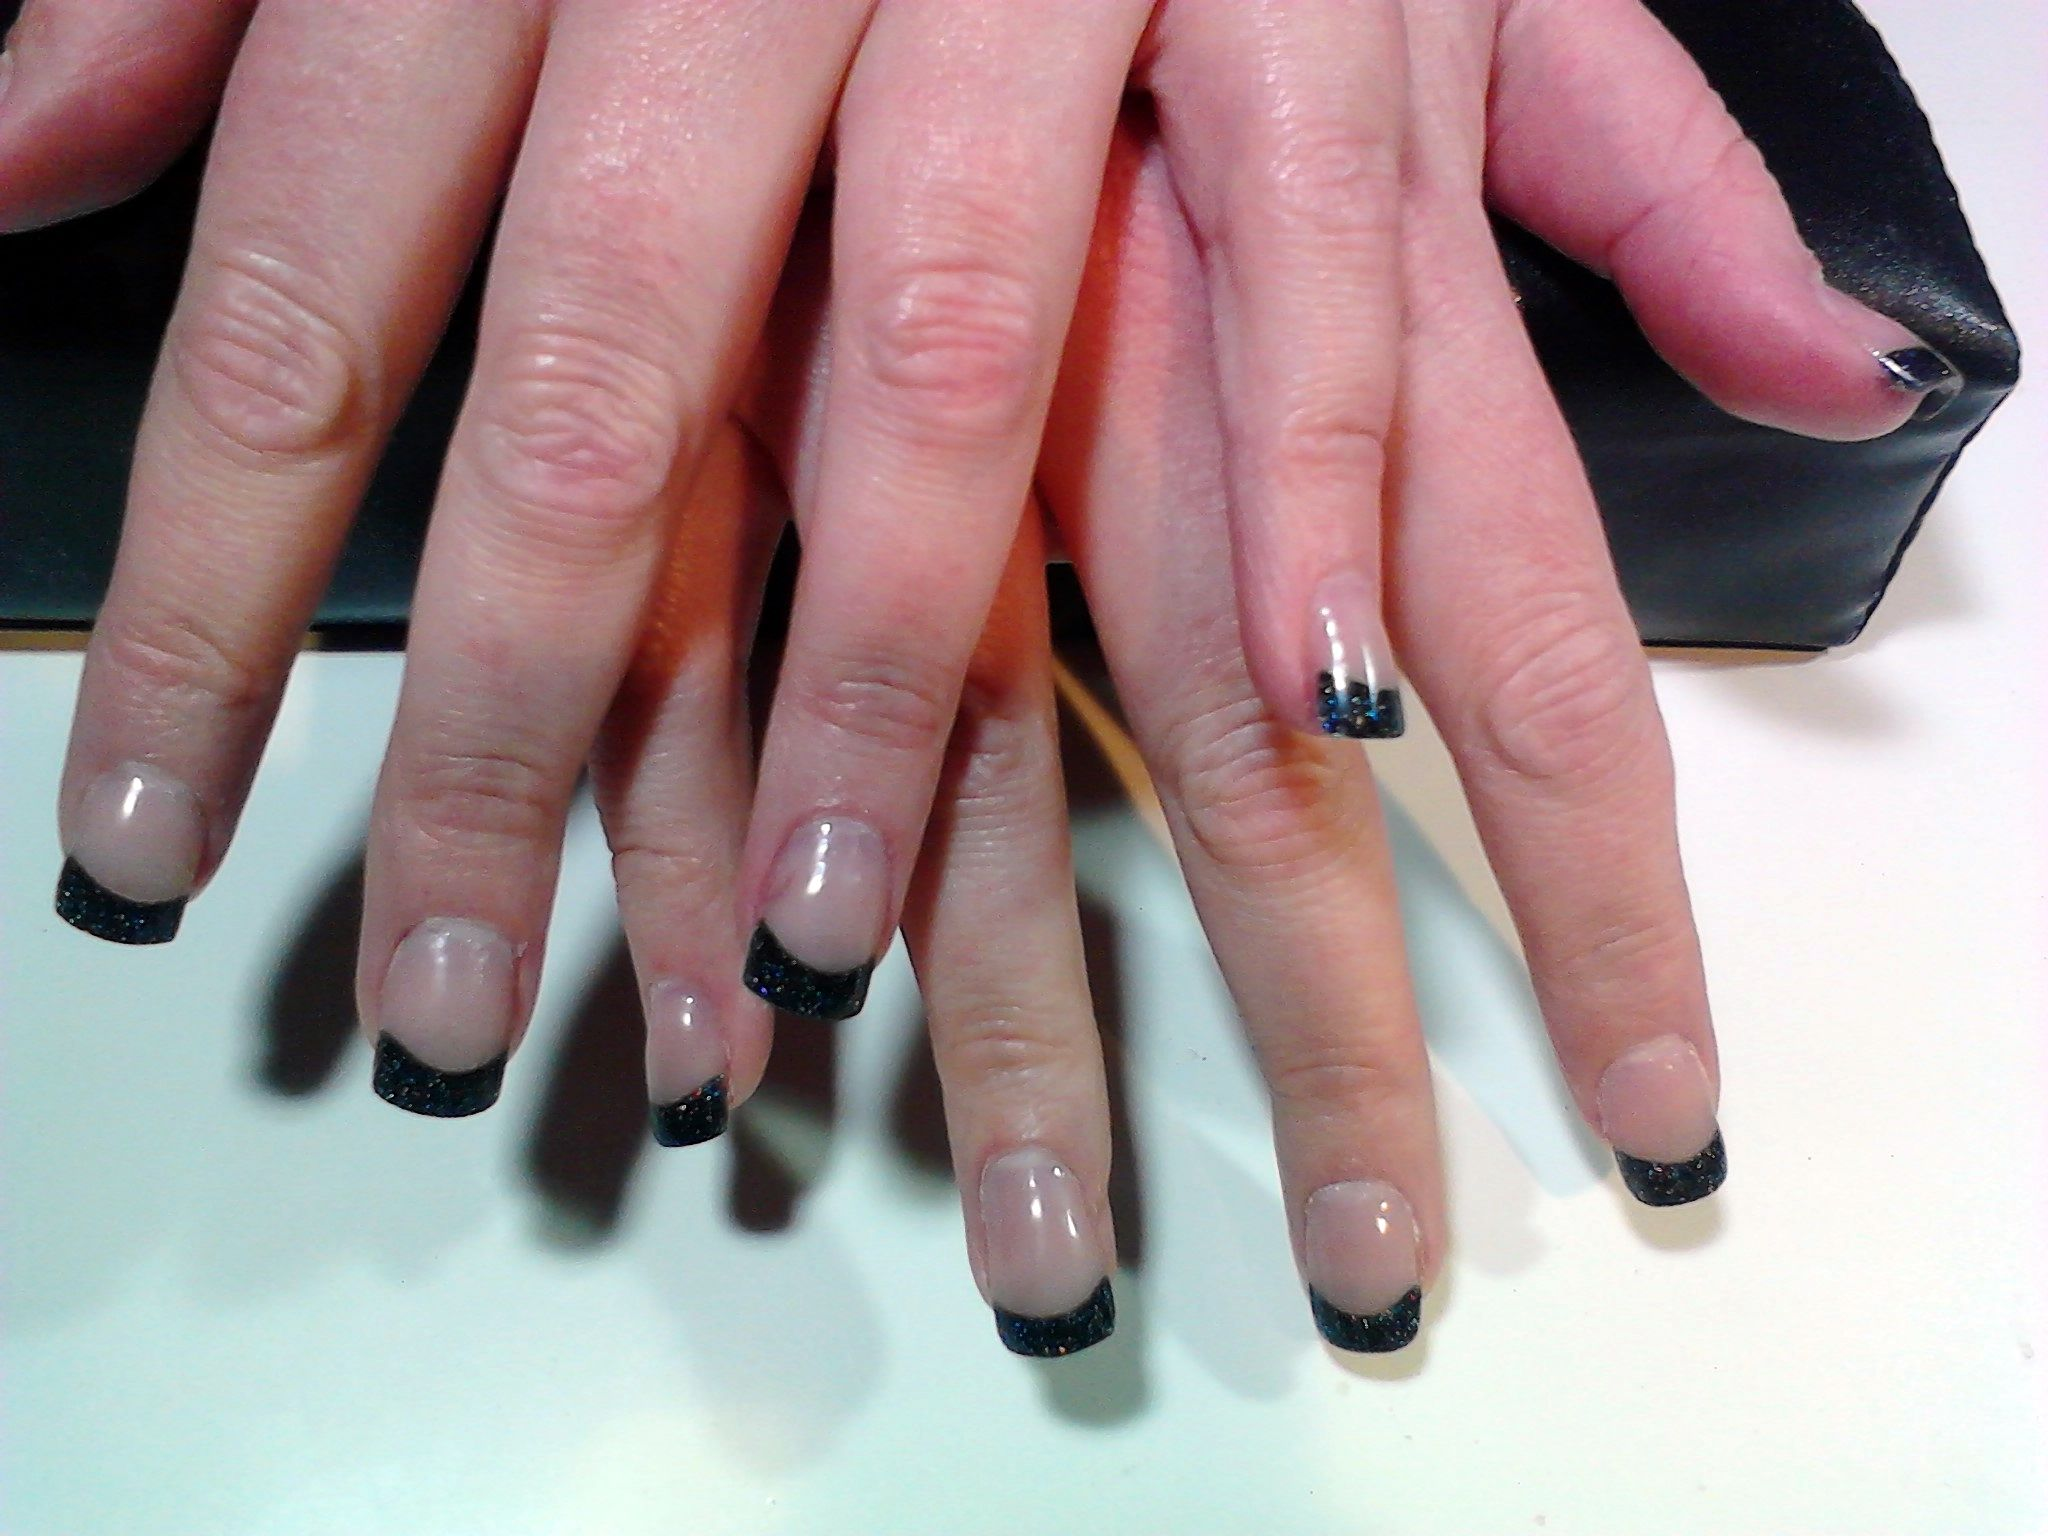 Pin on Nail Tech Manicurist Training Course